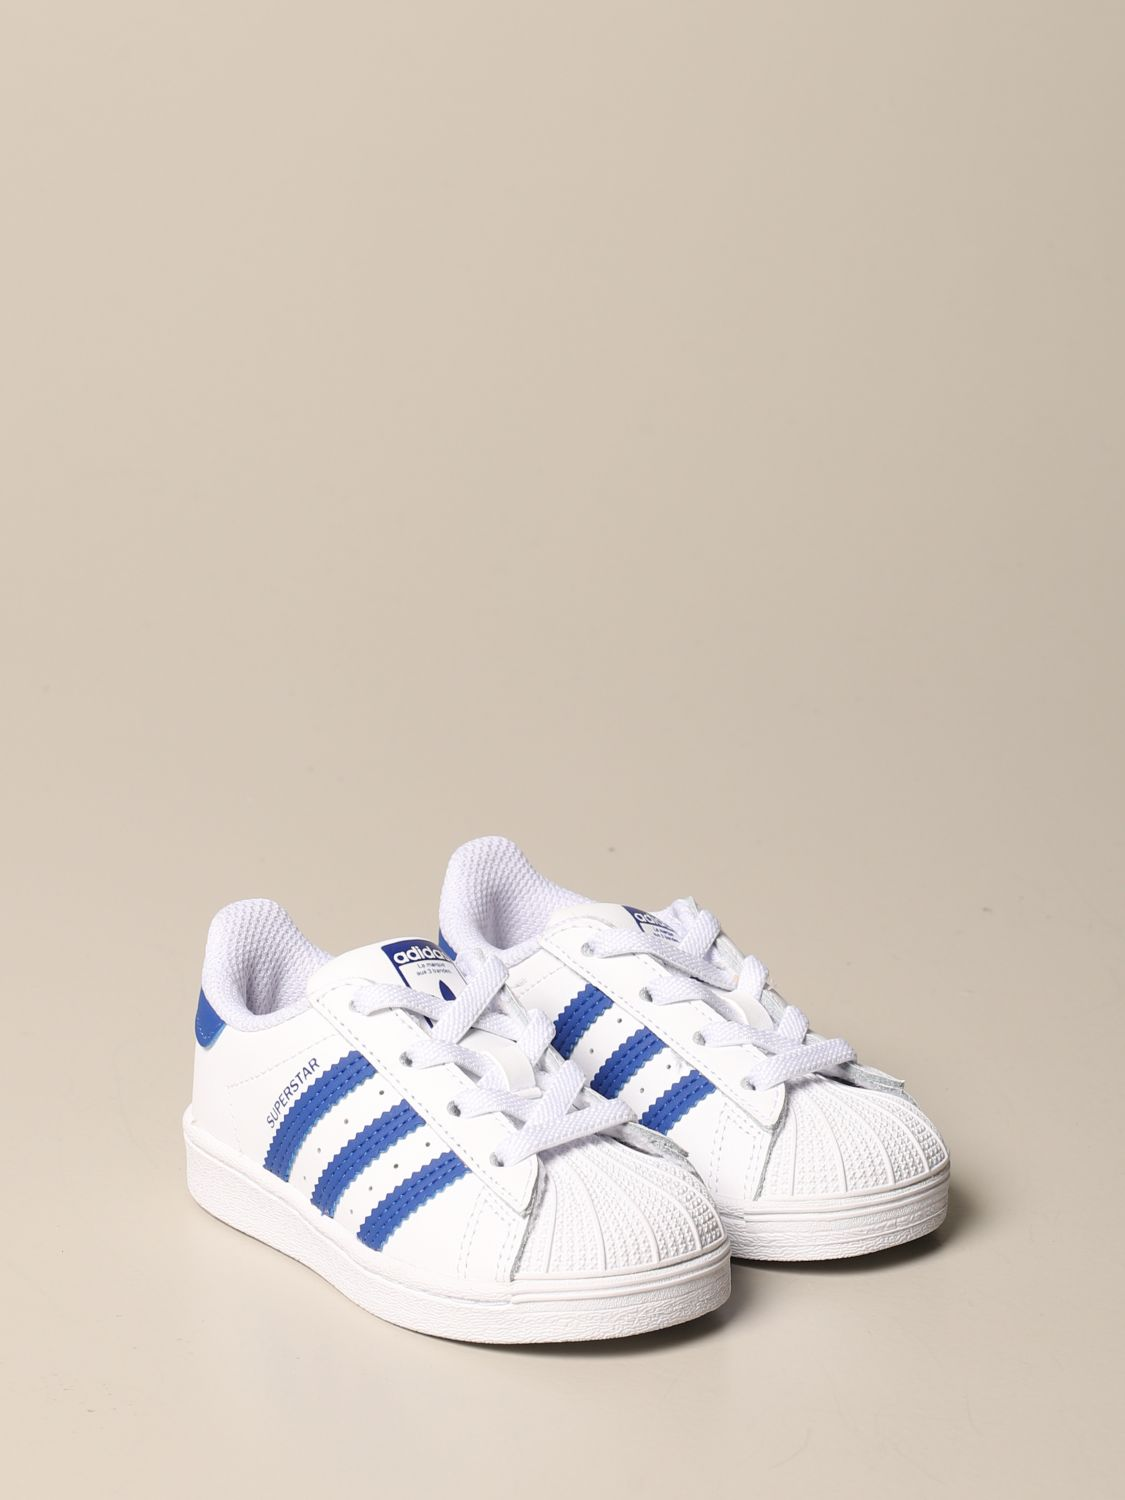 Scarpe Adidas Originals: Sneakers Superstar Adidas Originals in pelle bianco 2